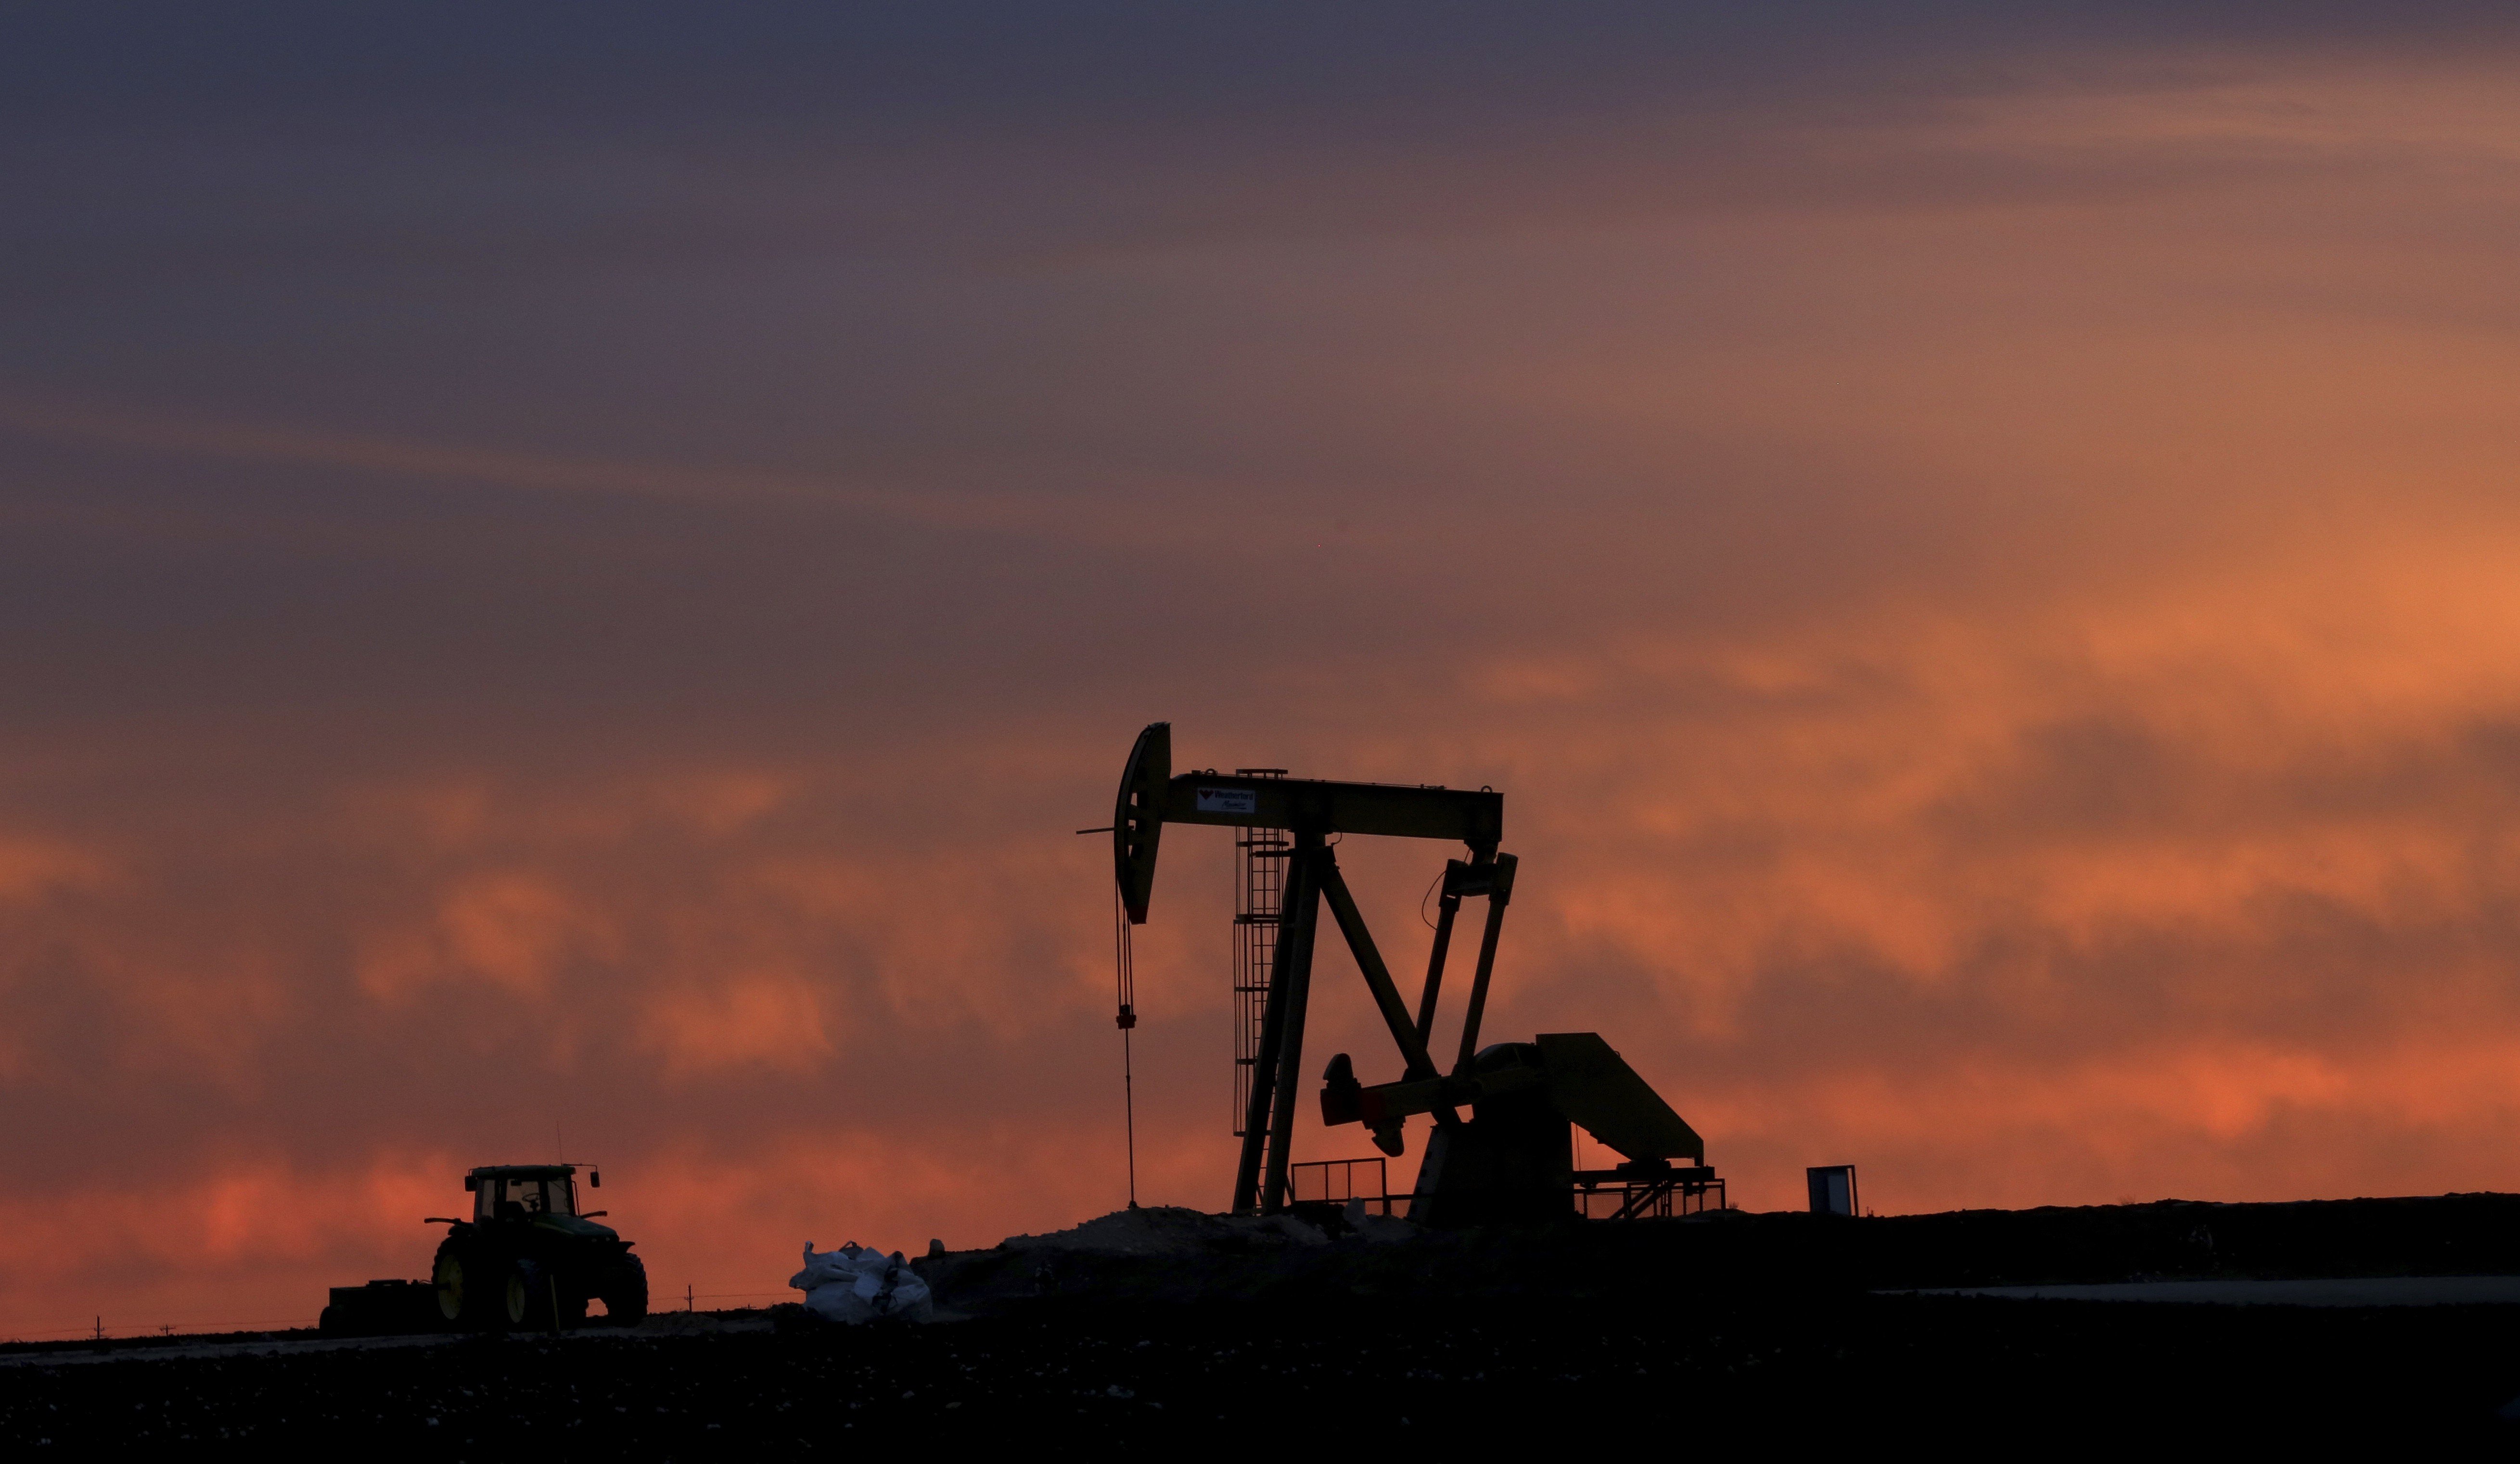 In this photo made Monday, Dec. 22, 2014, a well pump works at sunset on a farm near Sweetwater, Texas. At the heart of the Cline, a shale formation once thought to hold more oil than Saudi Arabia, Sweetwater is bracing for layoffs and budget cuts, anxious as oil prices fall and its largest investors pull back.